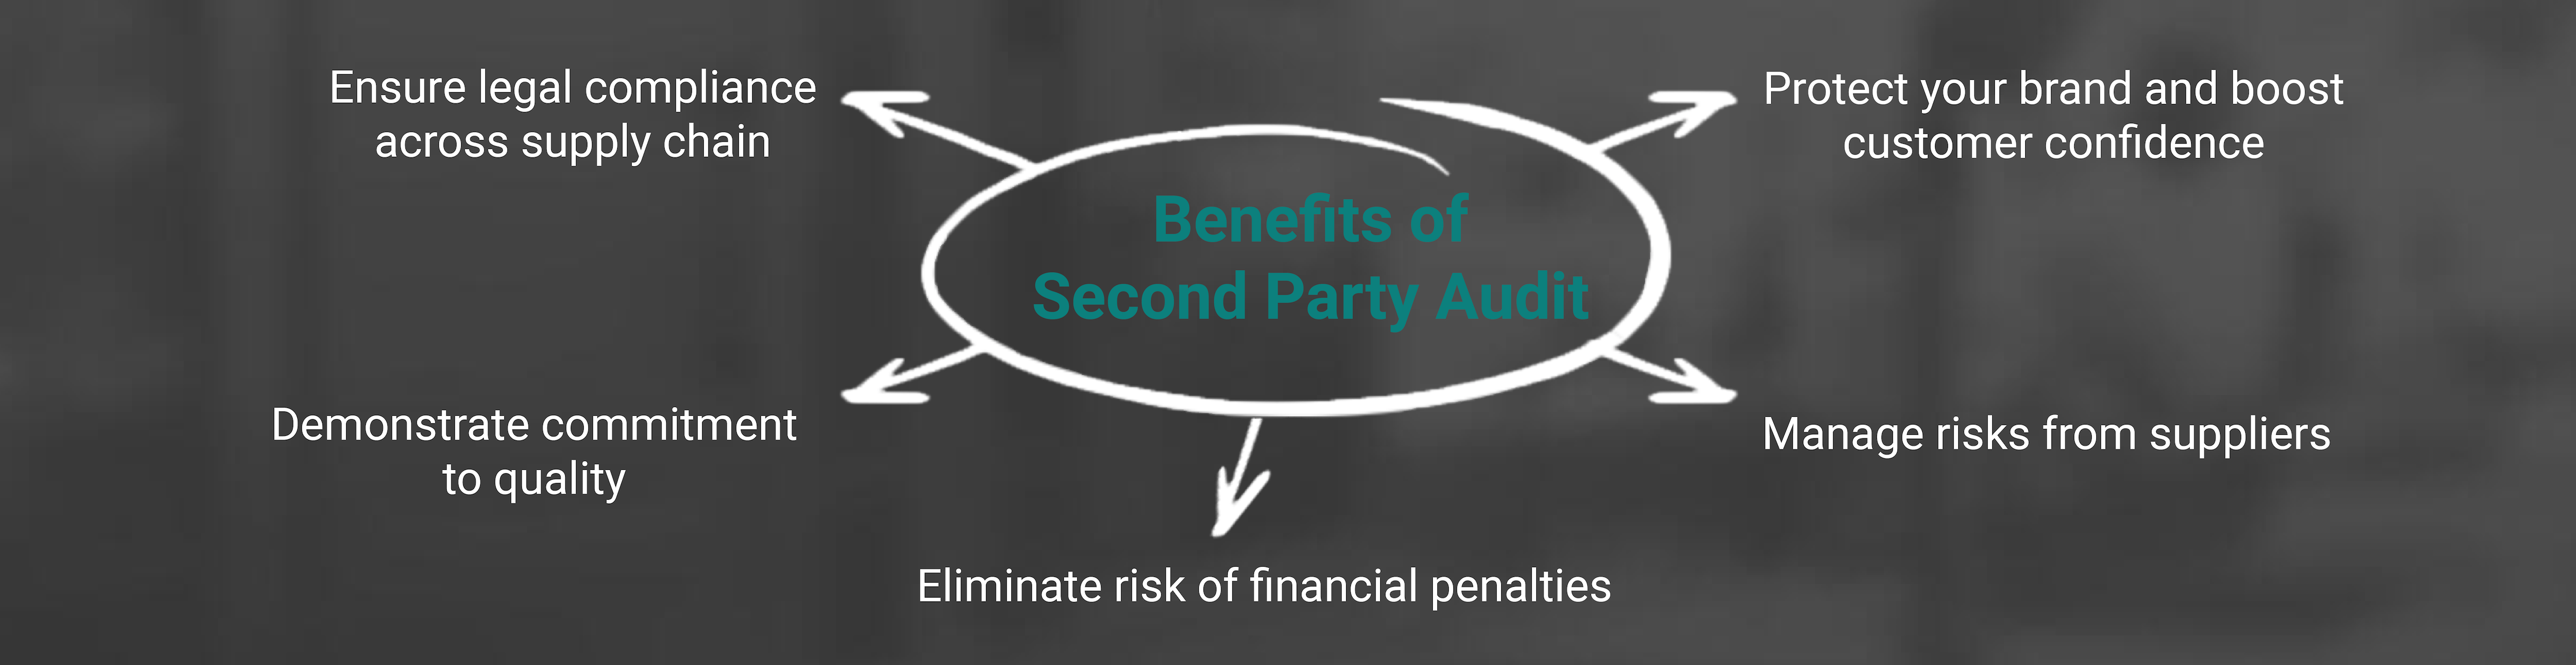 Benefits of Second Party Audit